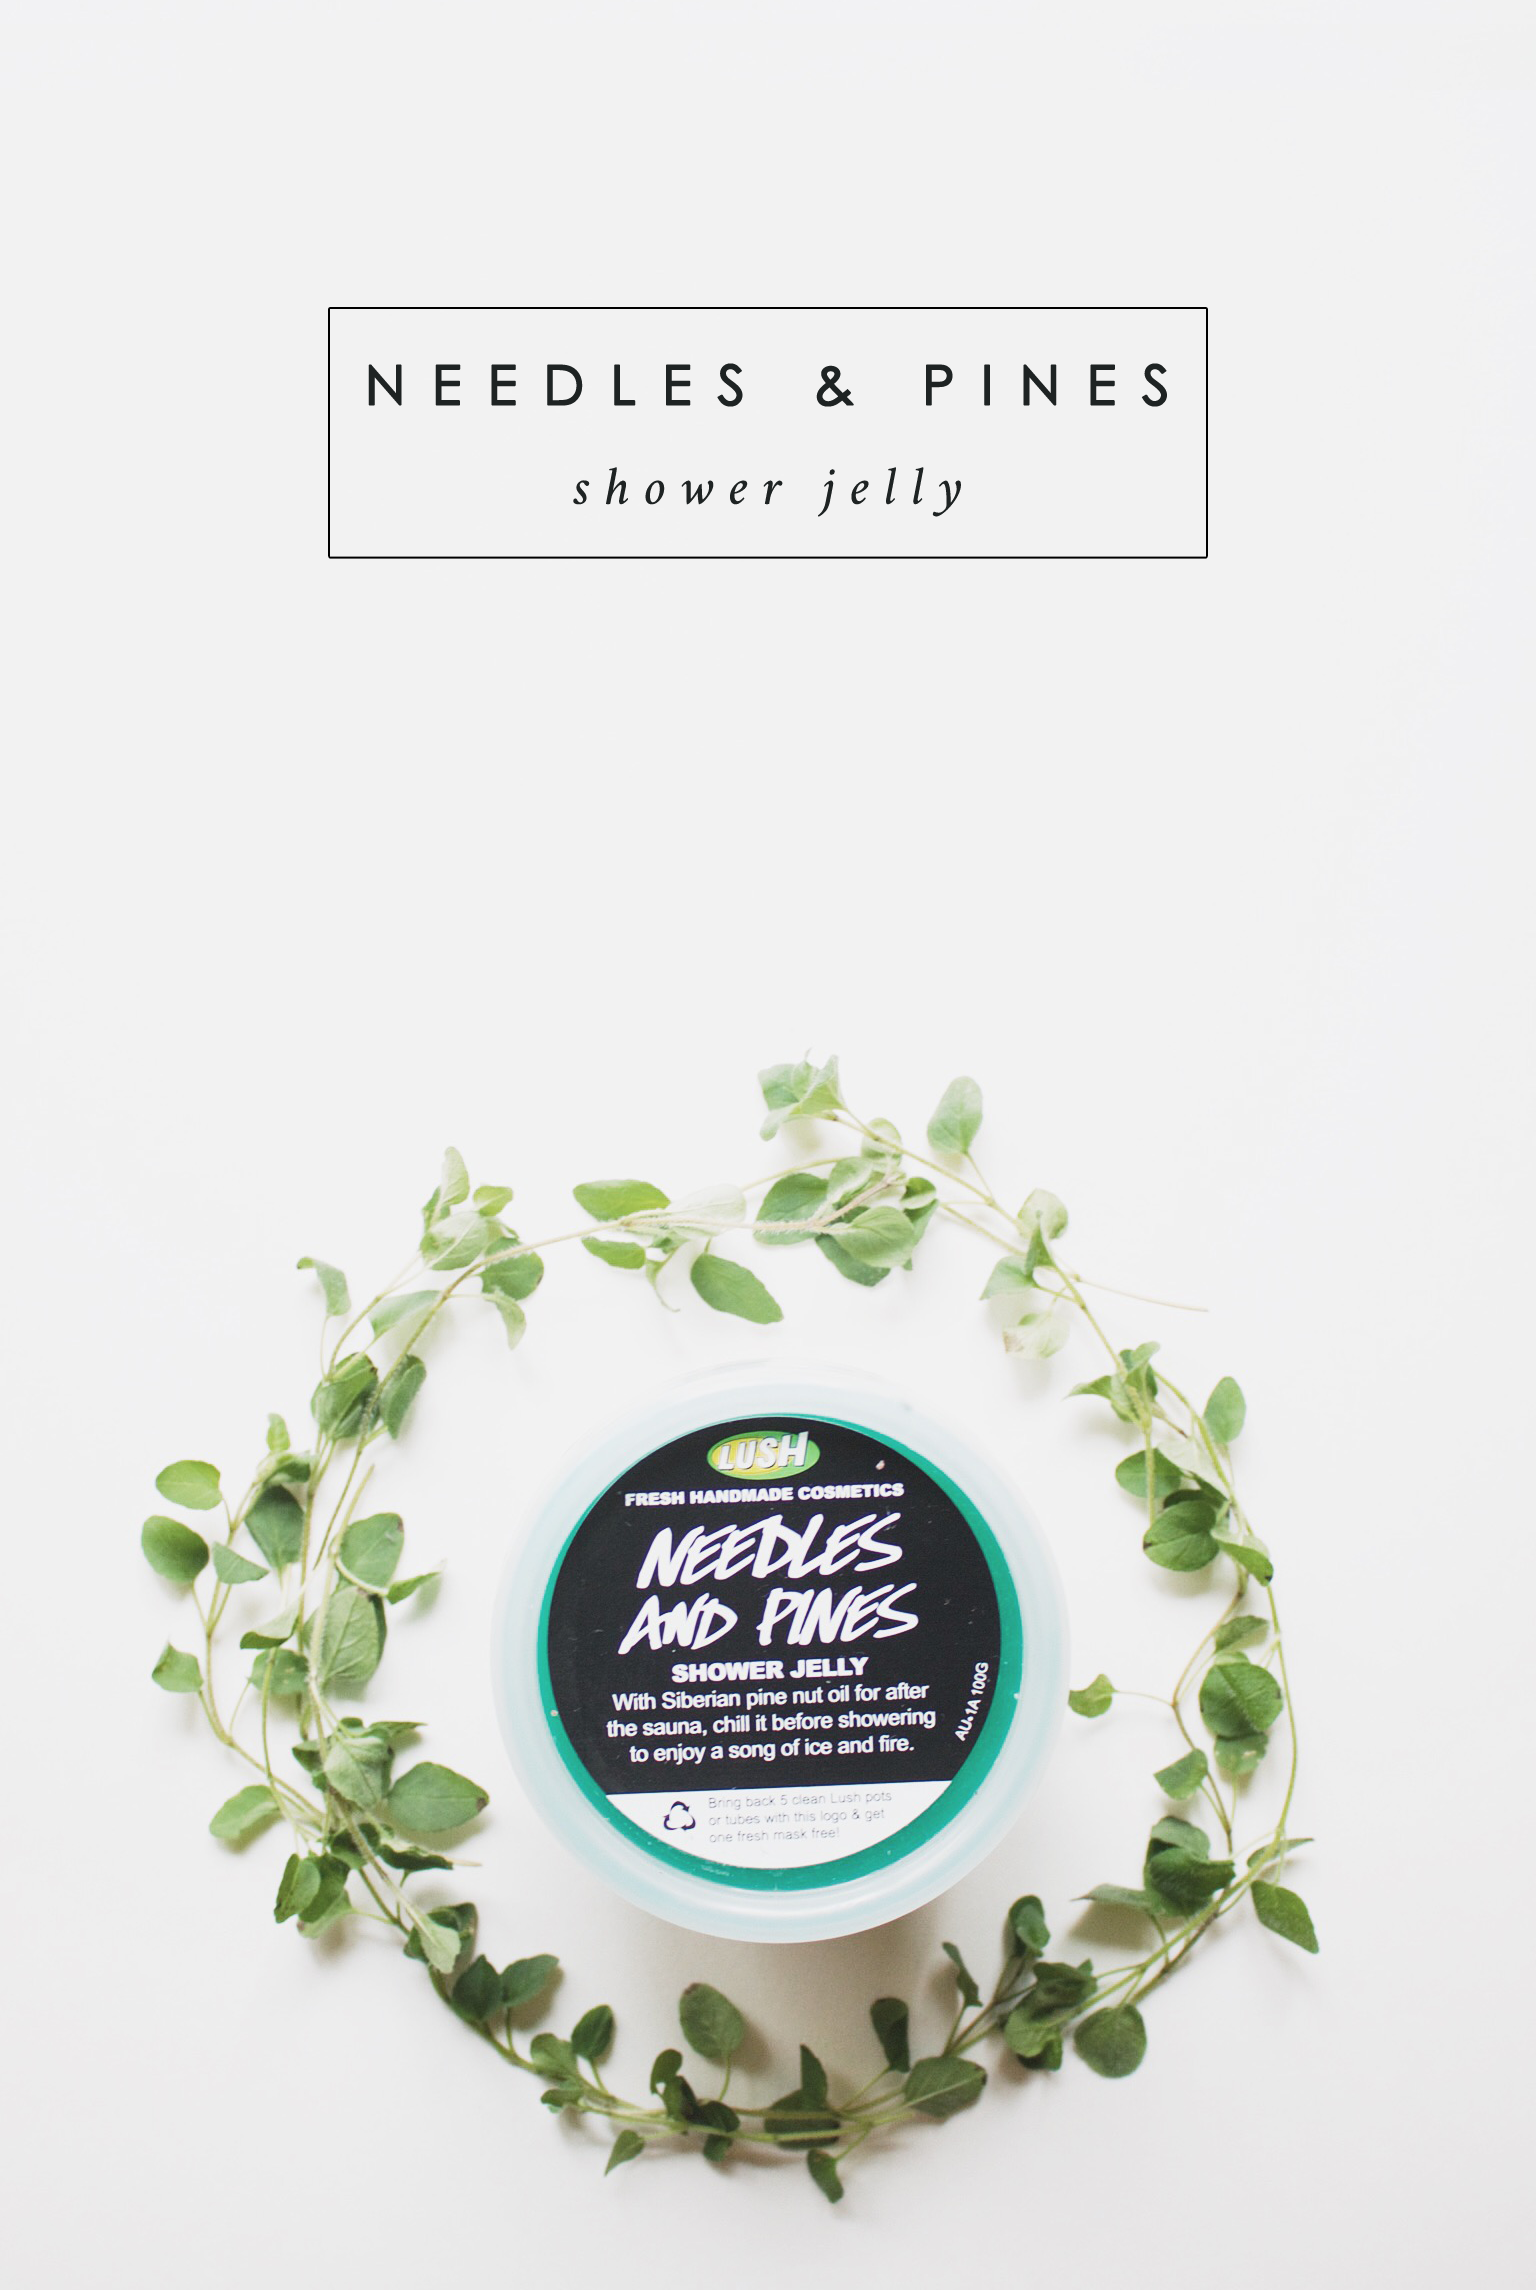 Needles and Pines Shower Jelly, Lush, Haul, Beauty, Bramble and Thorn